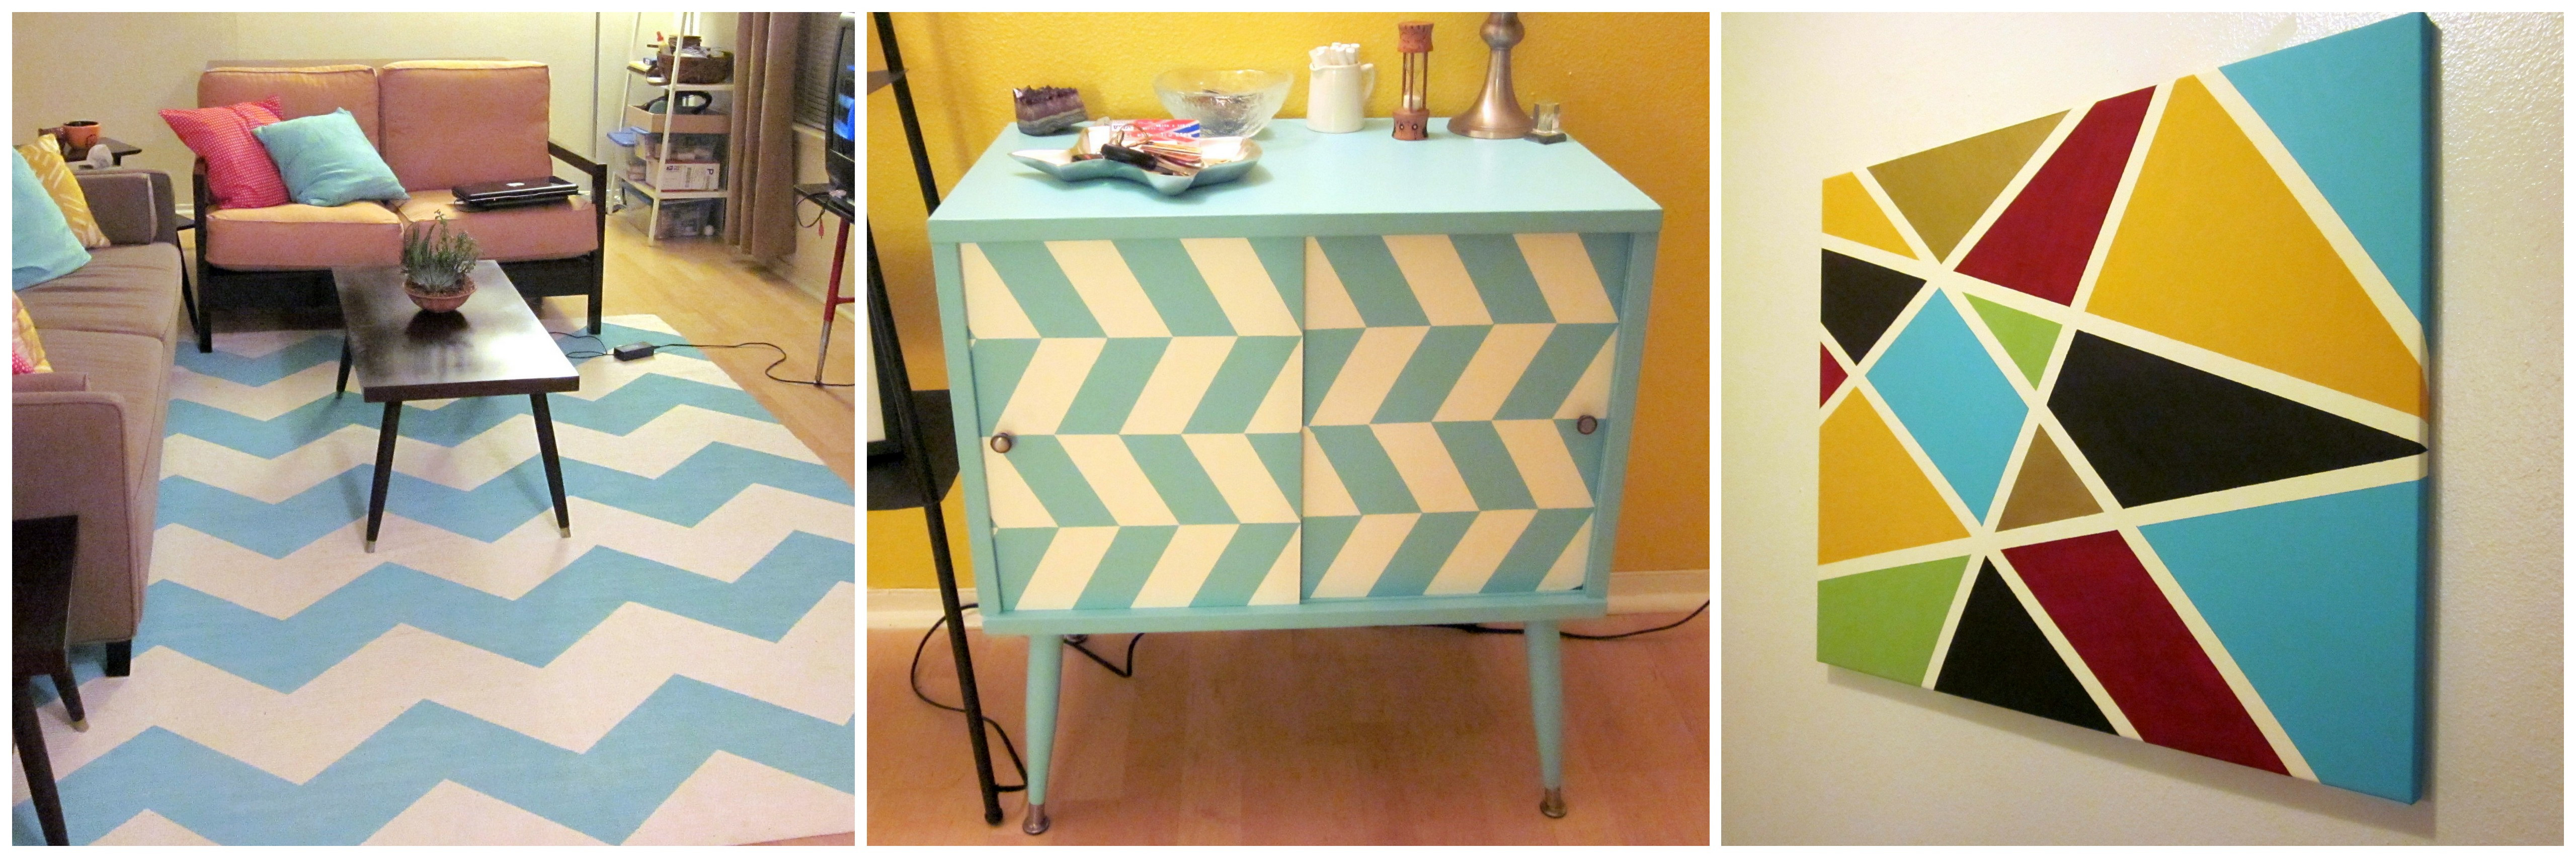 Best ideas about DIY House Painting . Save or Pin Painting By Tape – Semi DIY Home Decor Now.